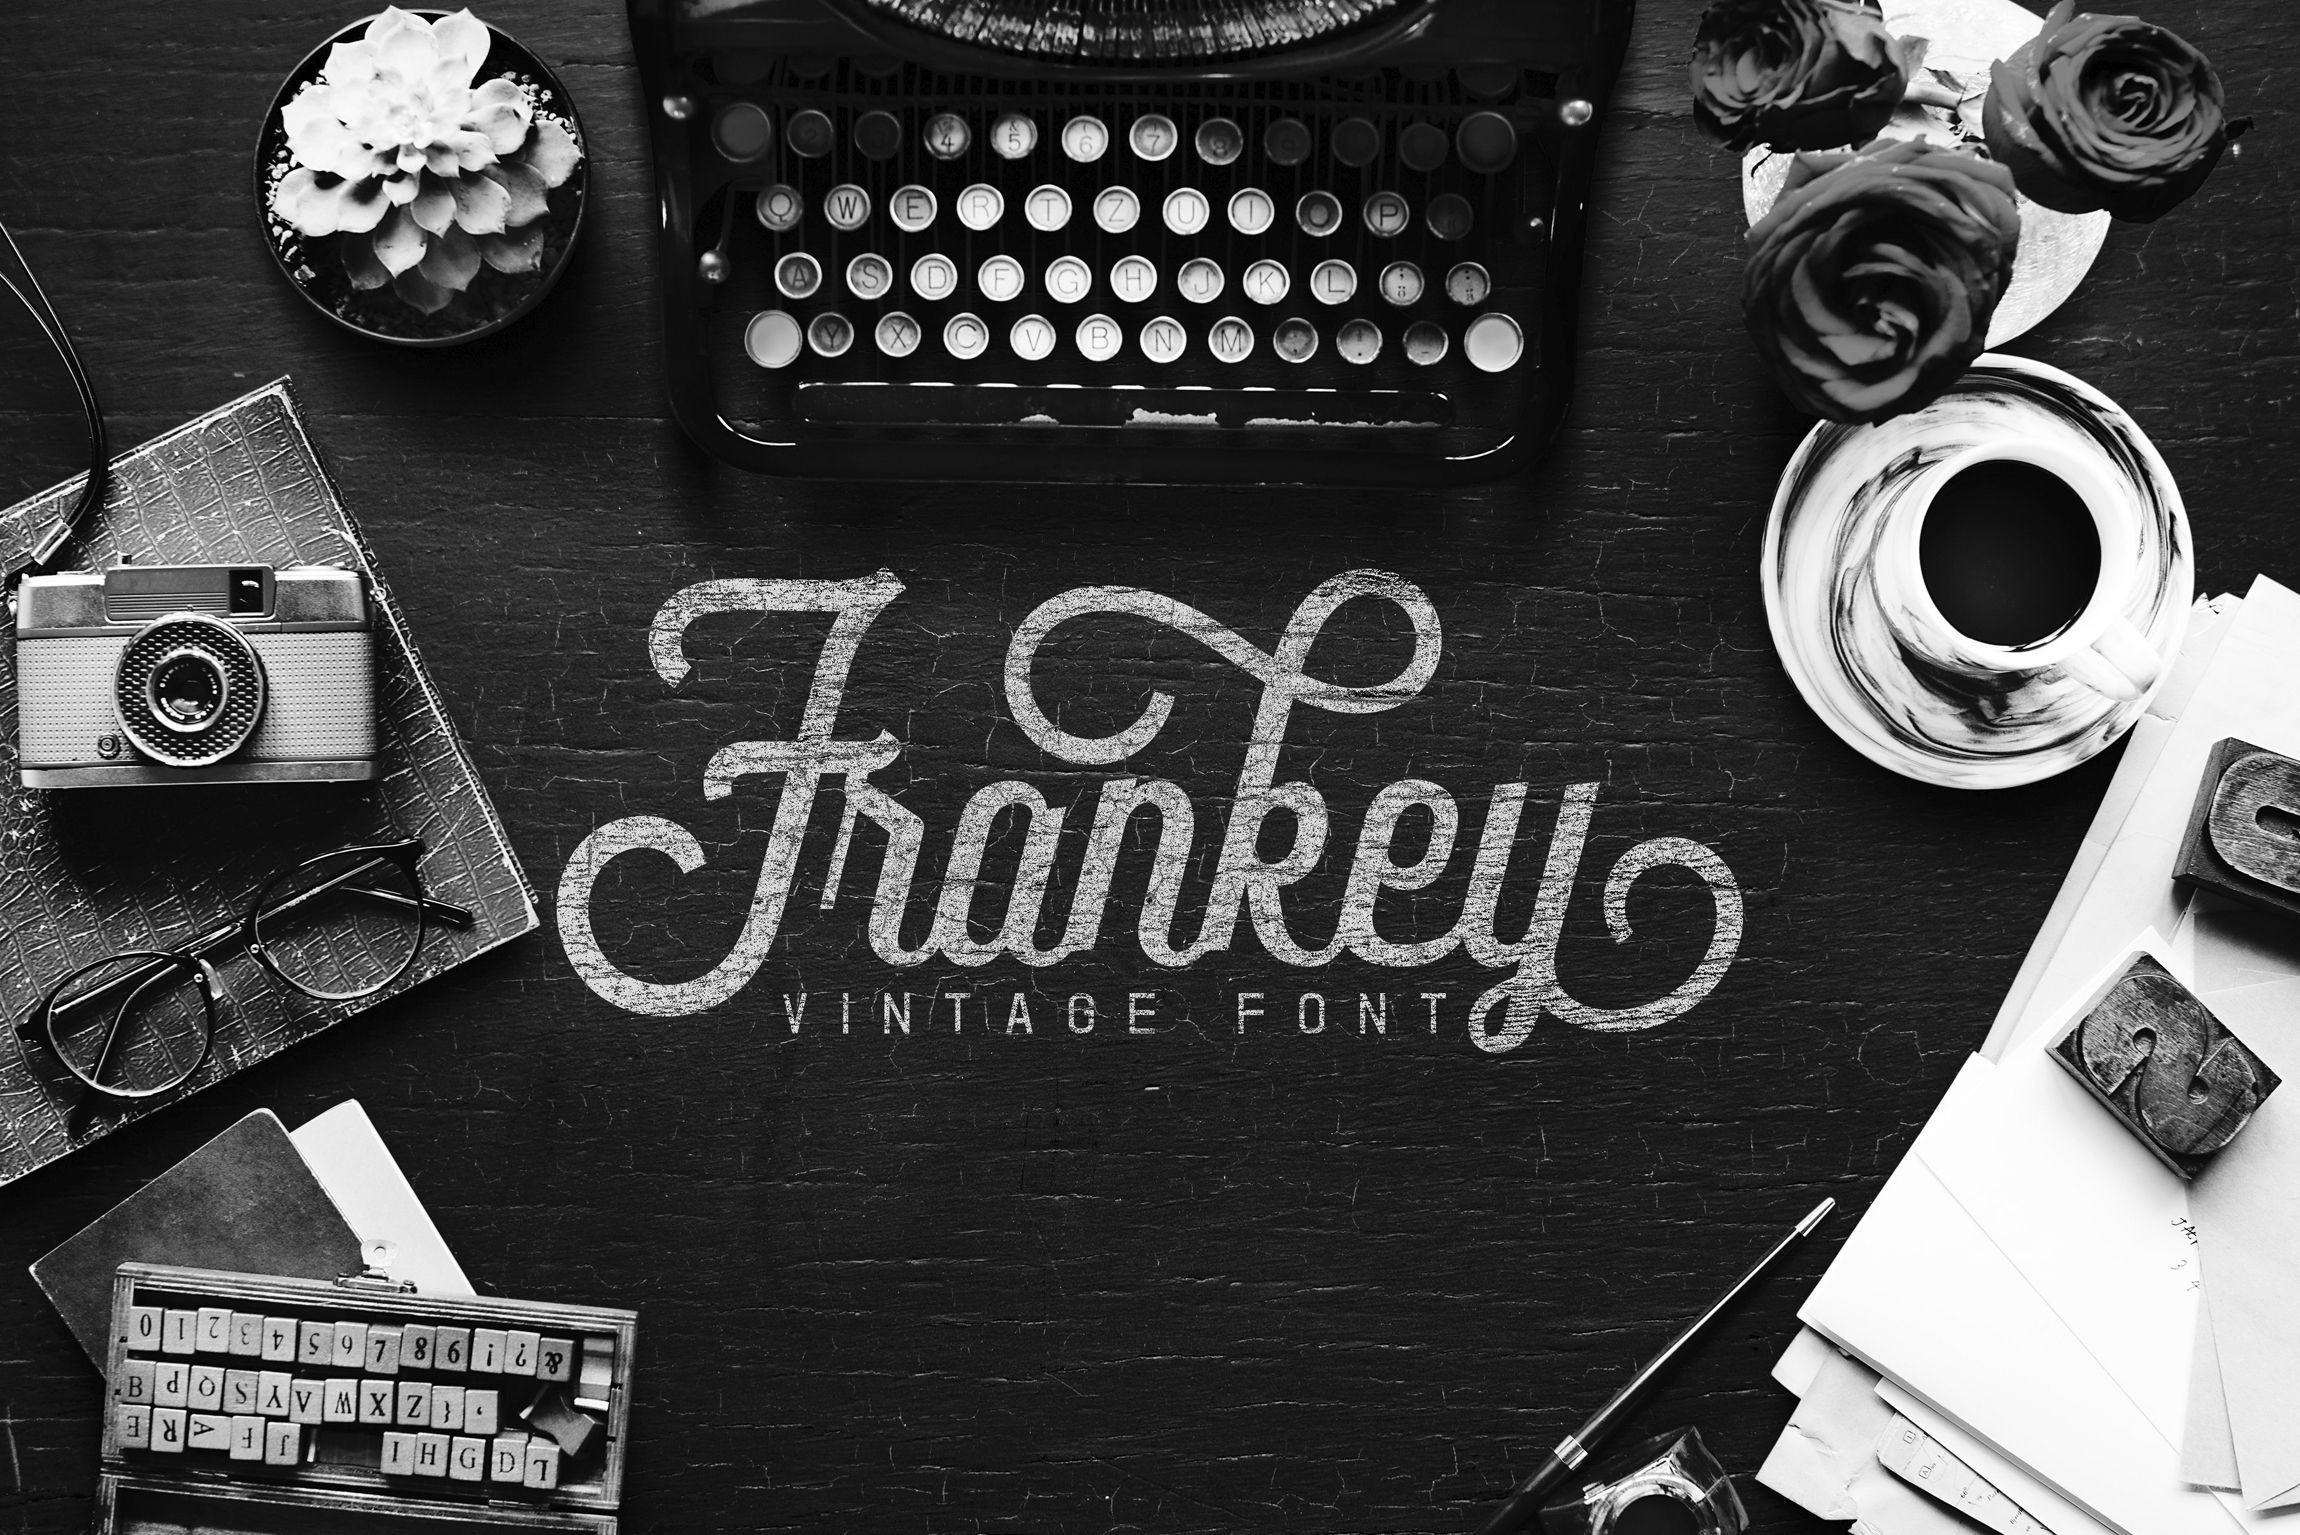 Frankey (Font) by Aqr Typeface